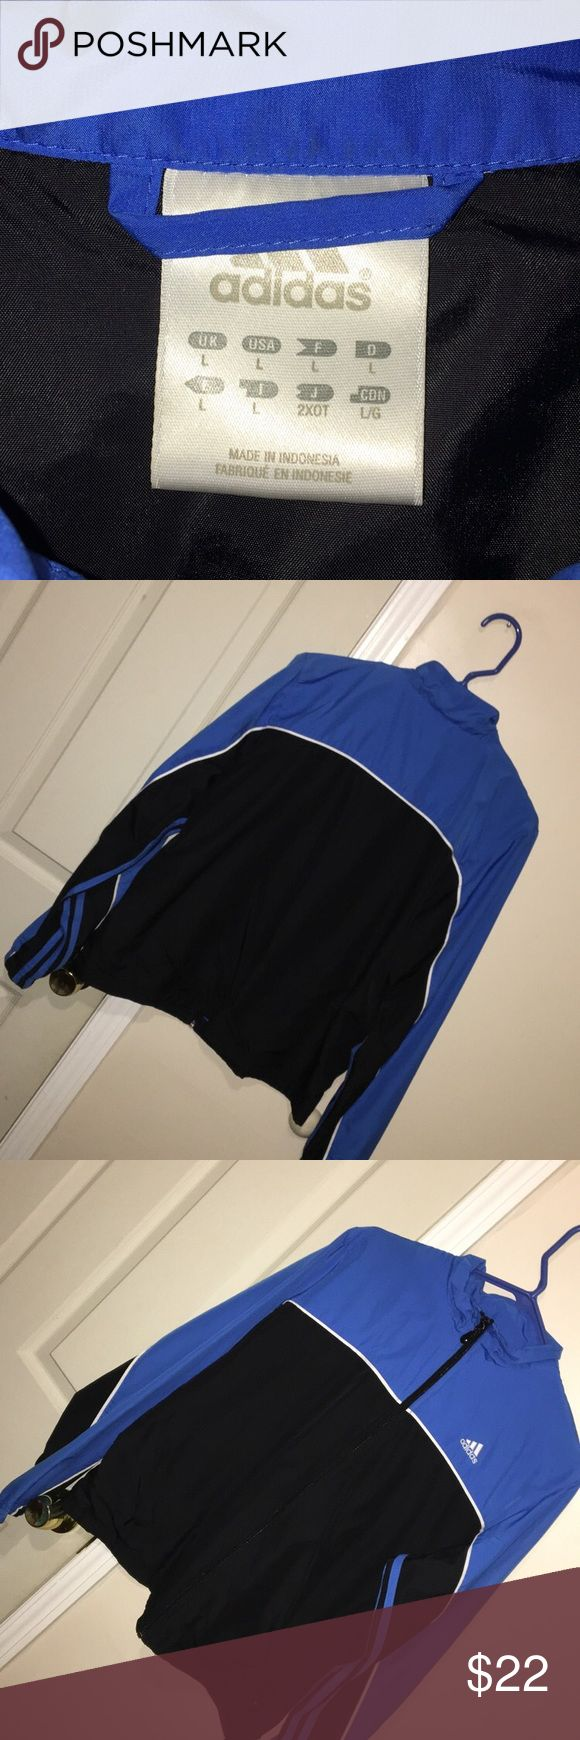 Adidas windbreaker Good condition Youth Large but can fit a Small in ladies size adidas Jackets & Coats Utility Jackets